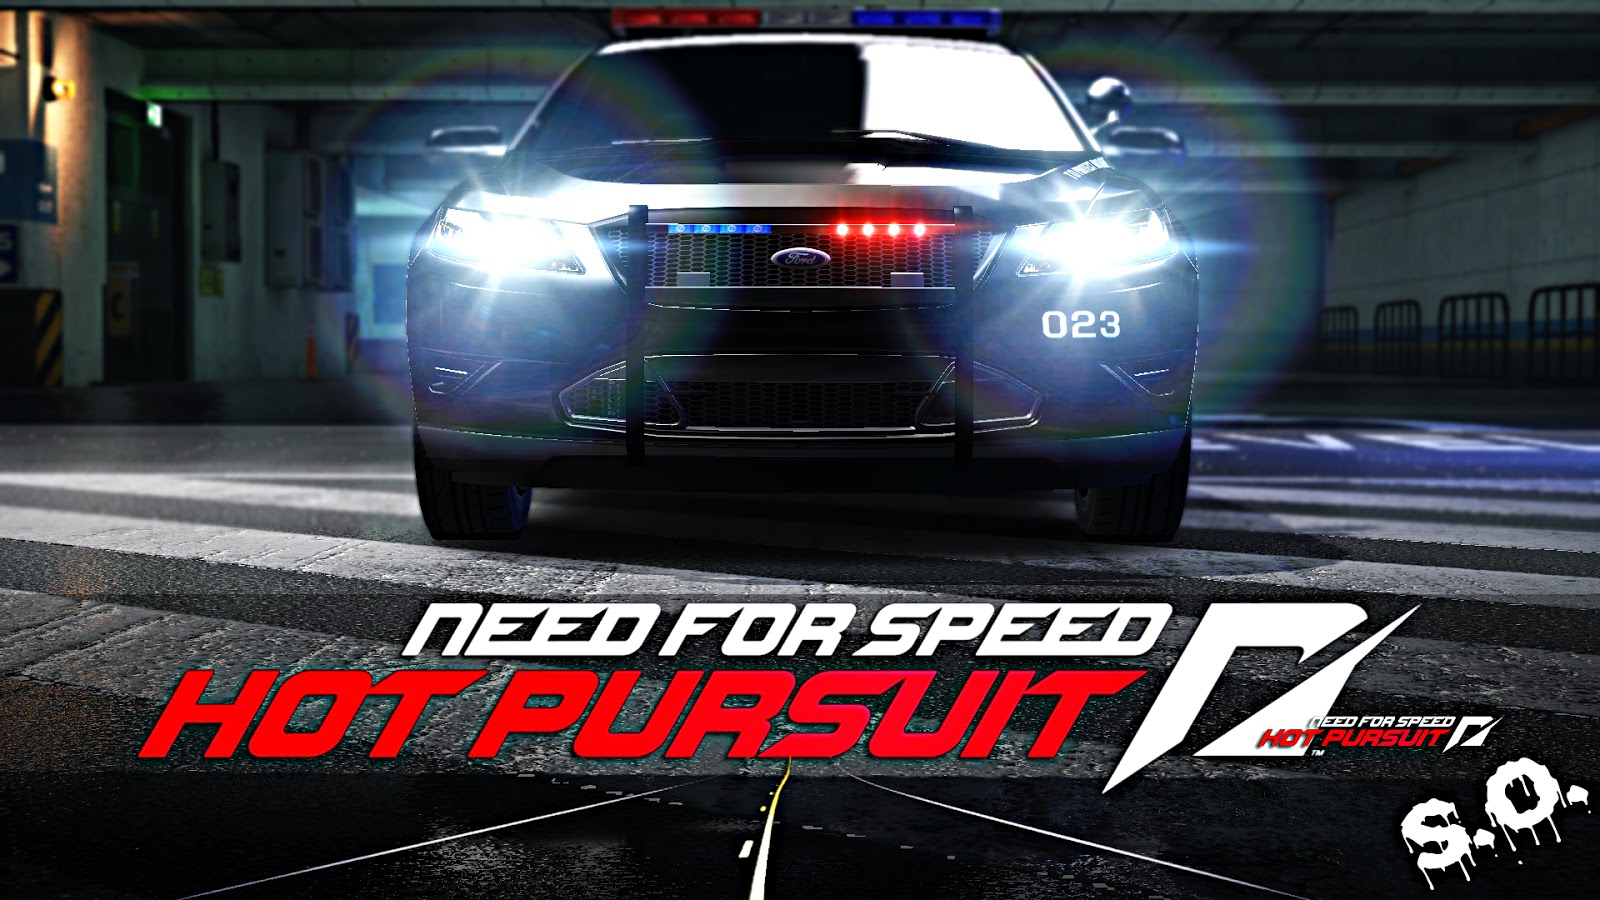 Need-For-Speed-Hot-Pursuit-Wallpaper